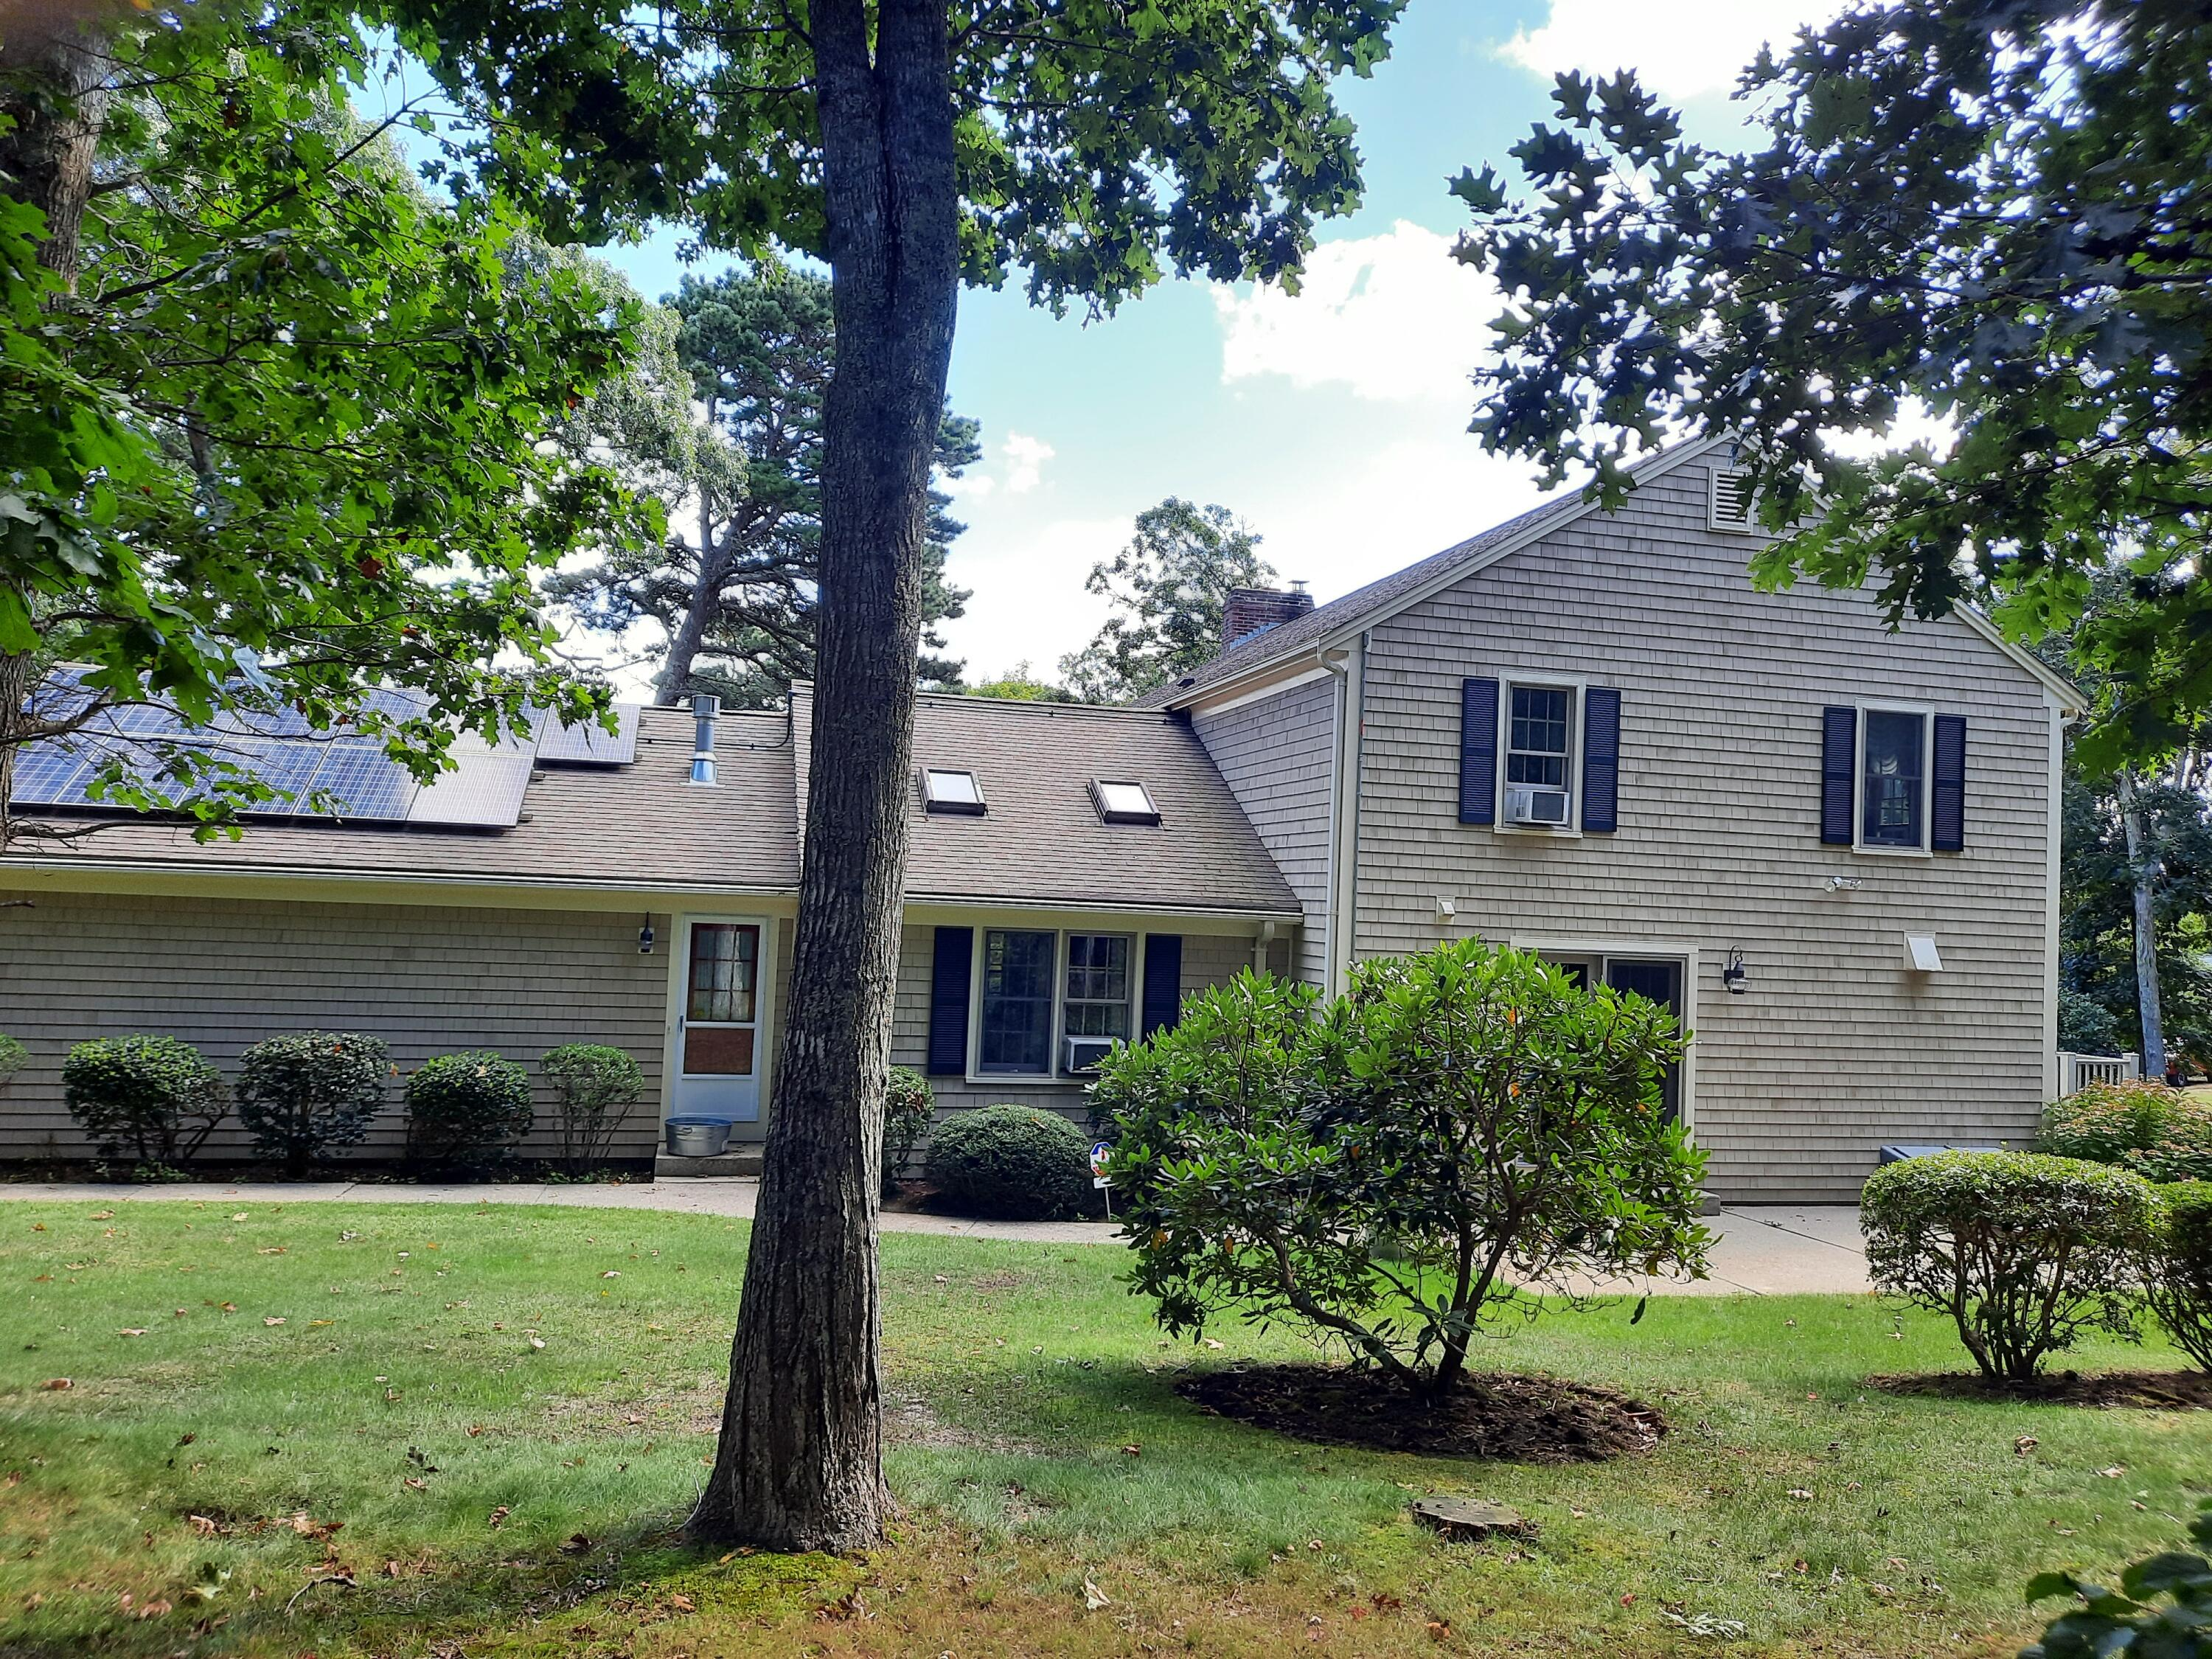 23 Dundee Drive, Yarmouth Port MA, 02675 details